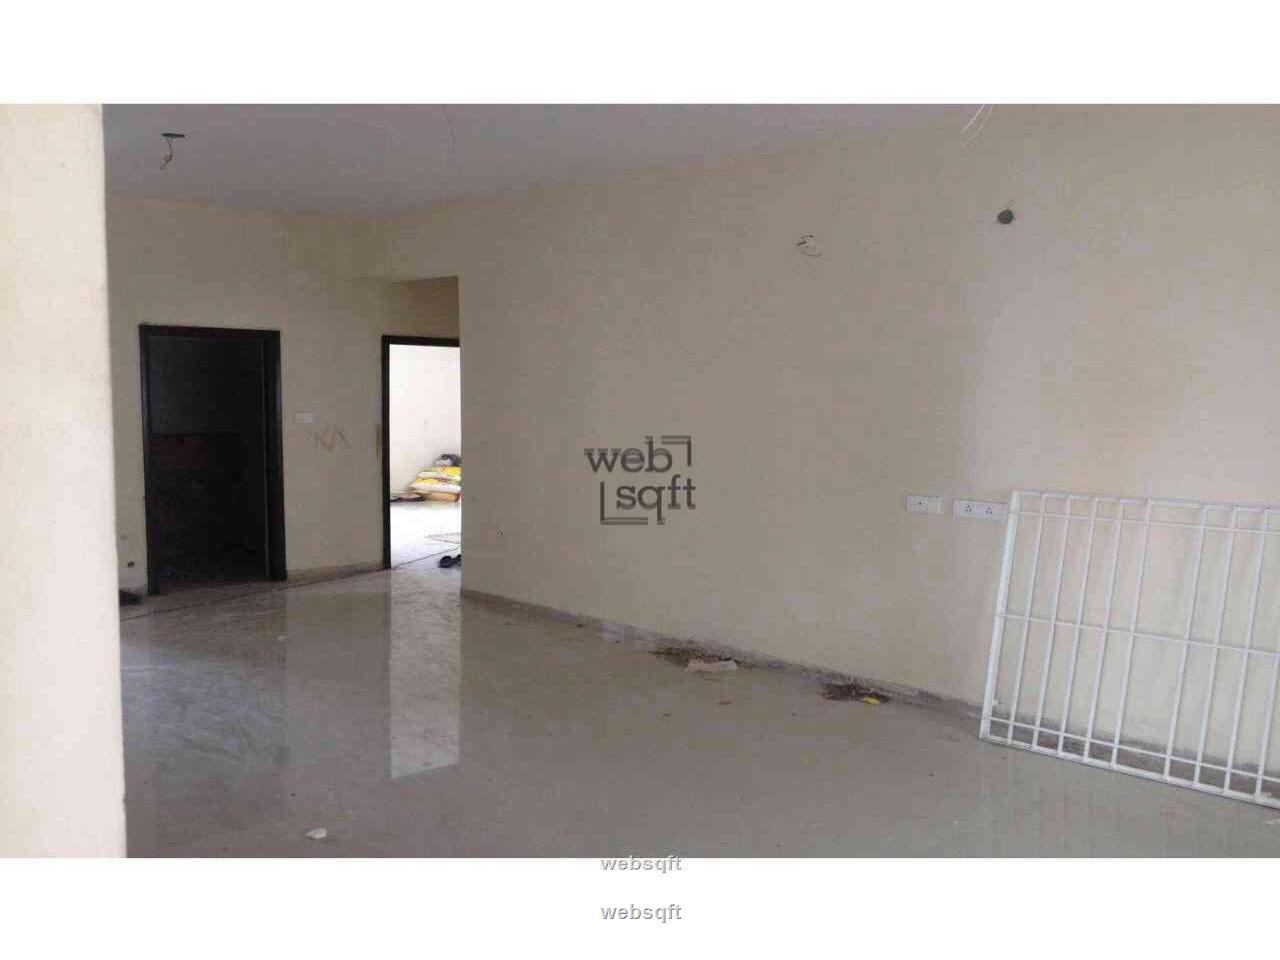 Websqft - Residential Apartment-flats - Property for Sale - in 1470Sq-ft/Madhapur at Rs 7056000